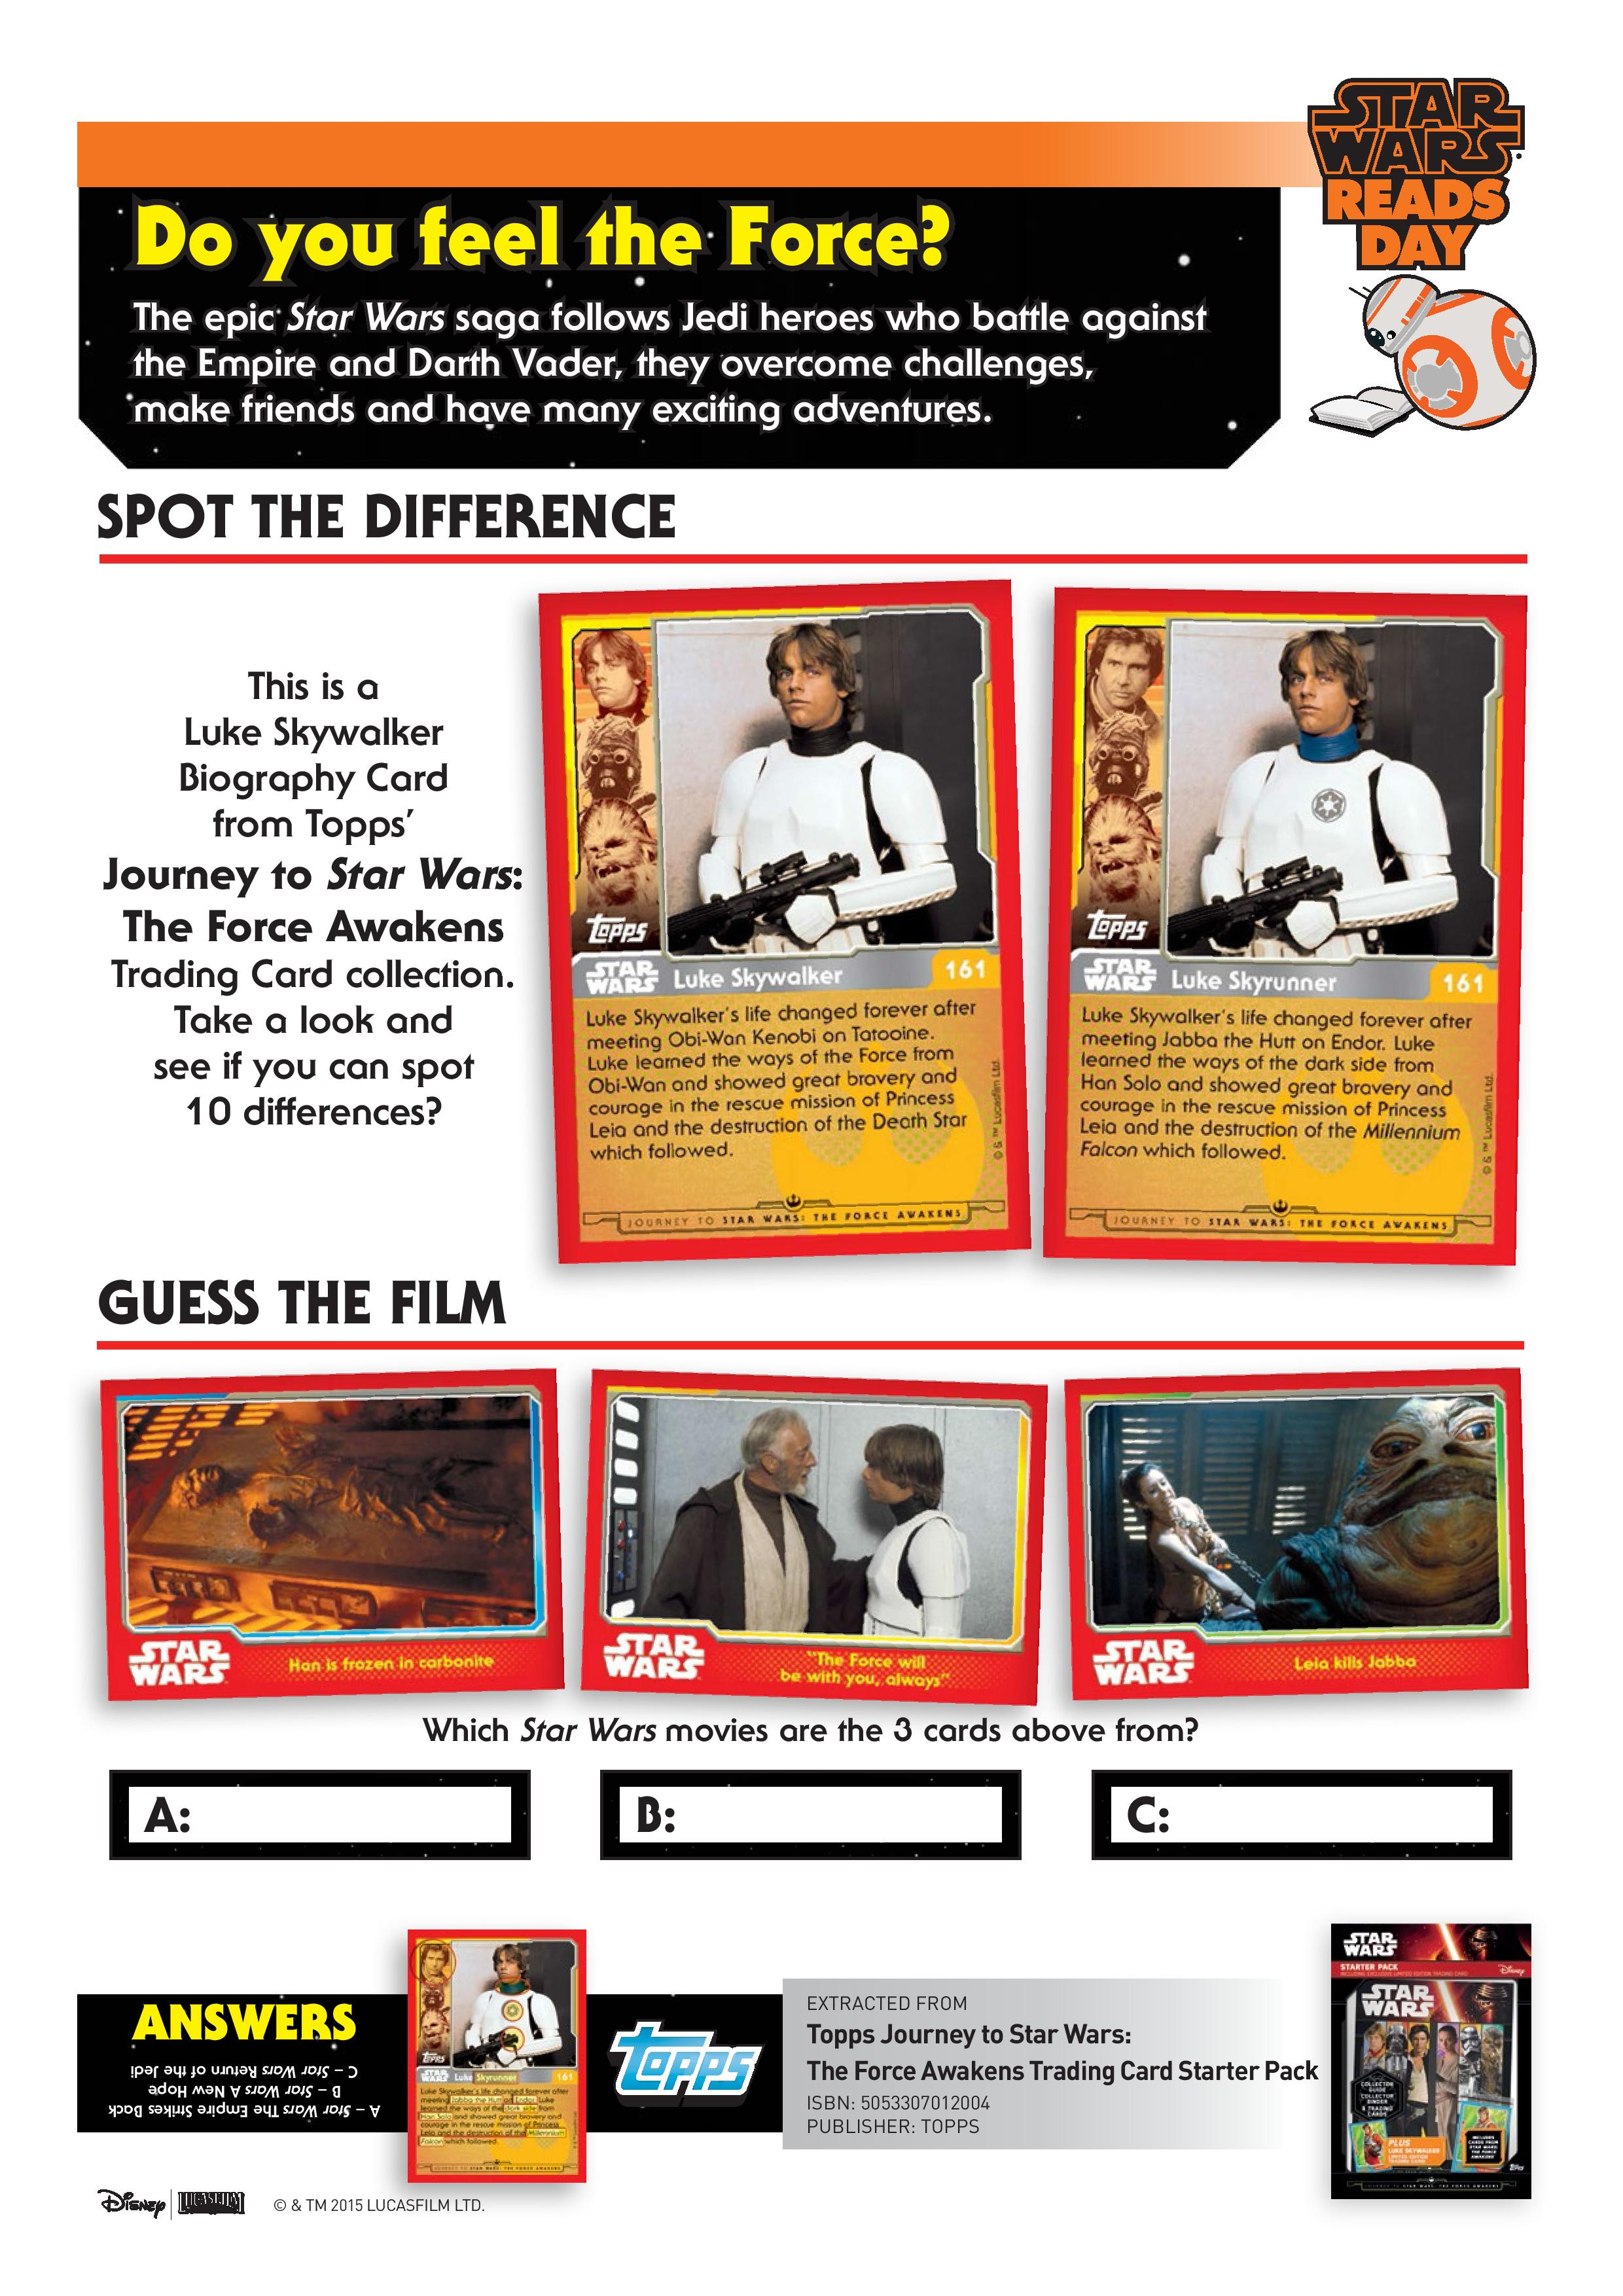 star-wars-reads-day-2015-activity-sheets-page-005